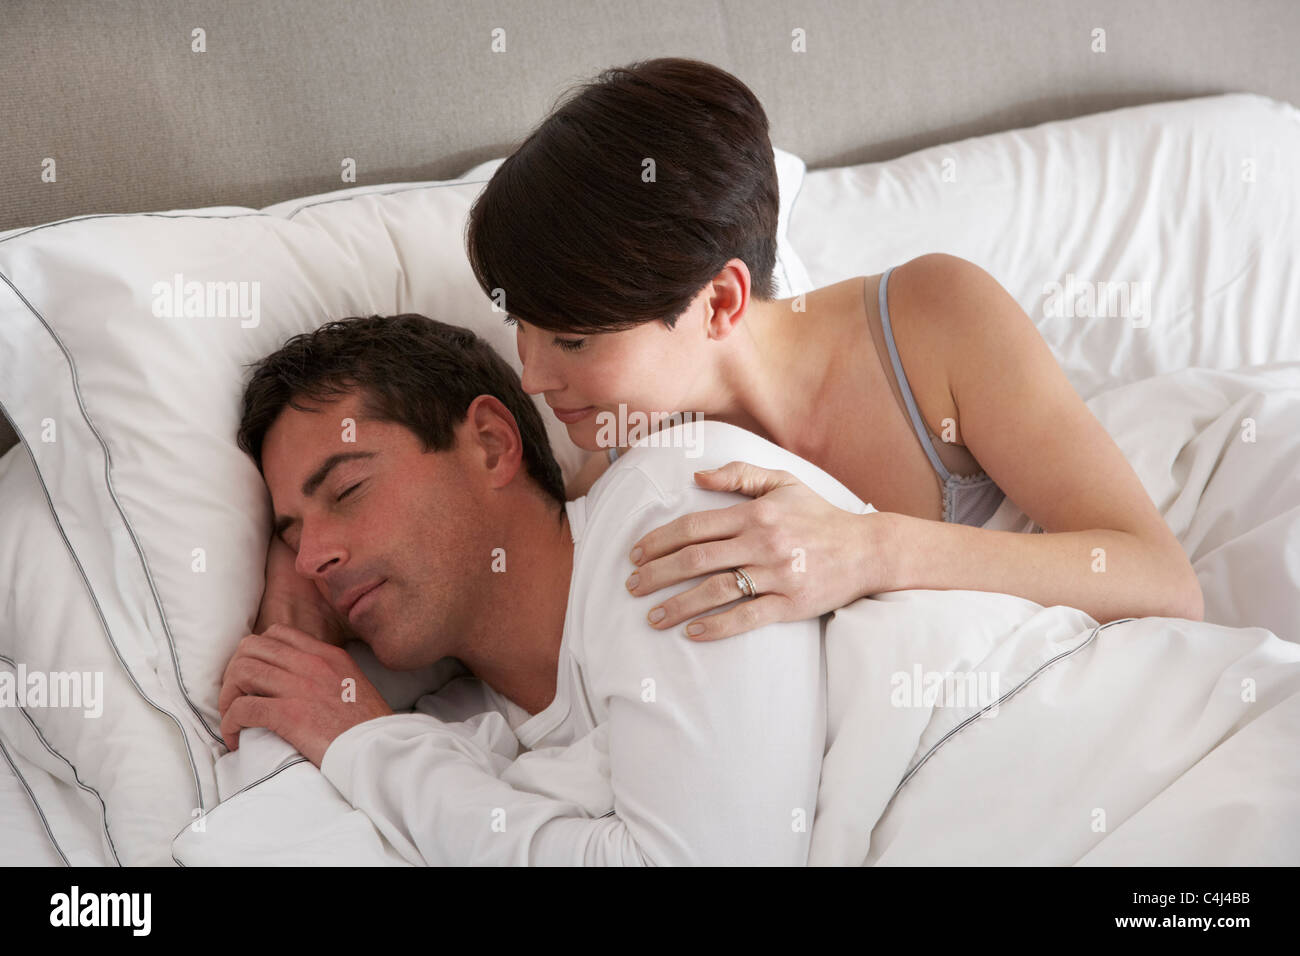 Couple With Problems Having Disagreement In Bed - Stock Image